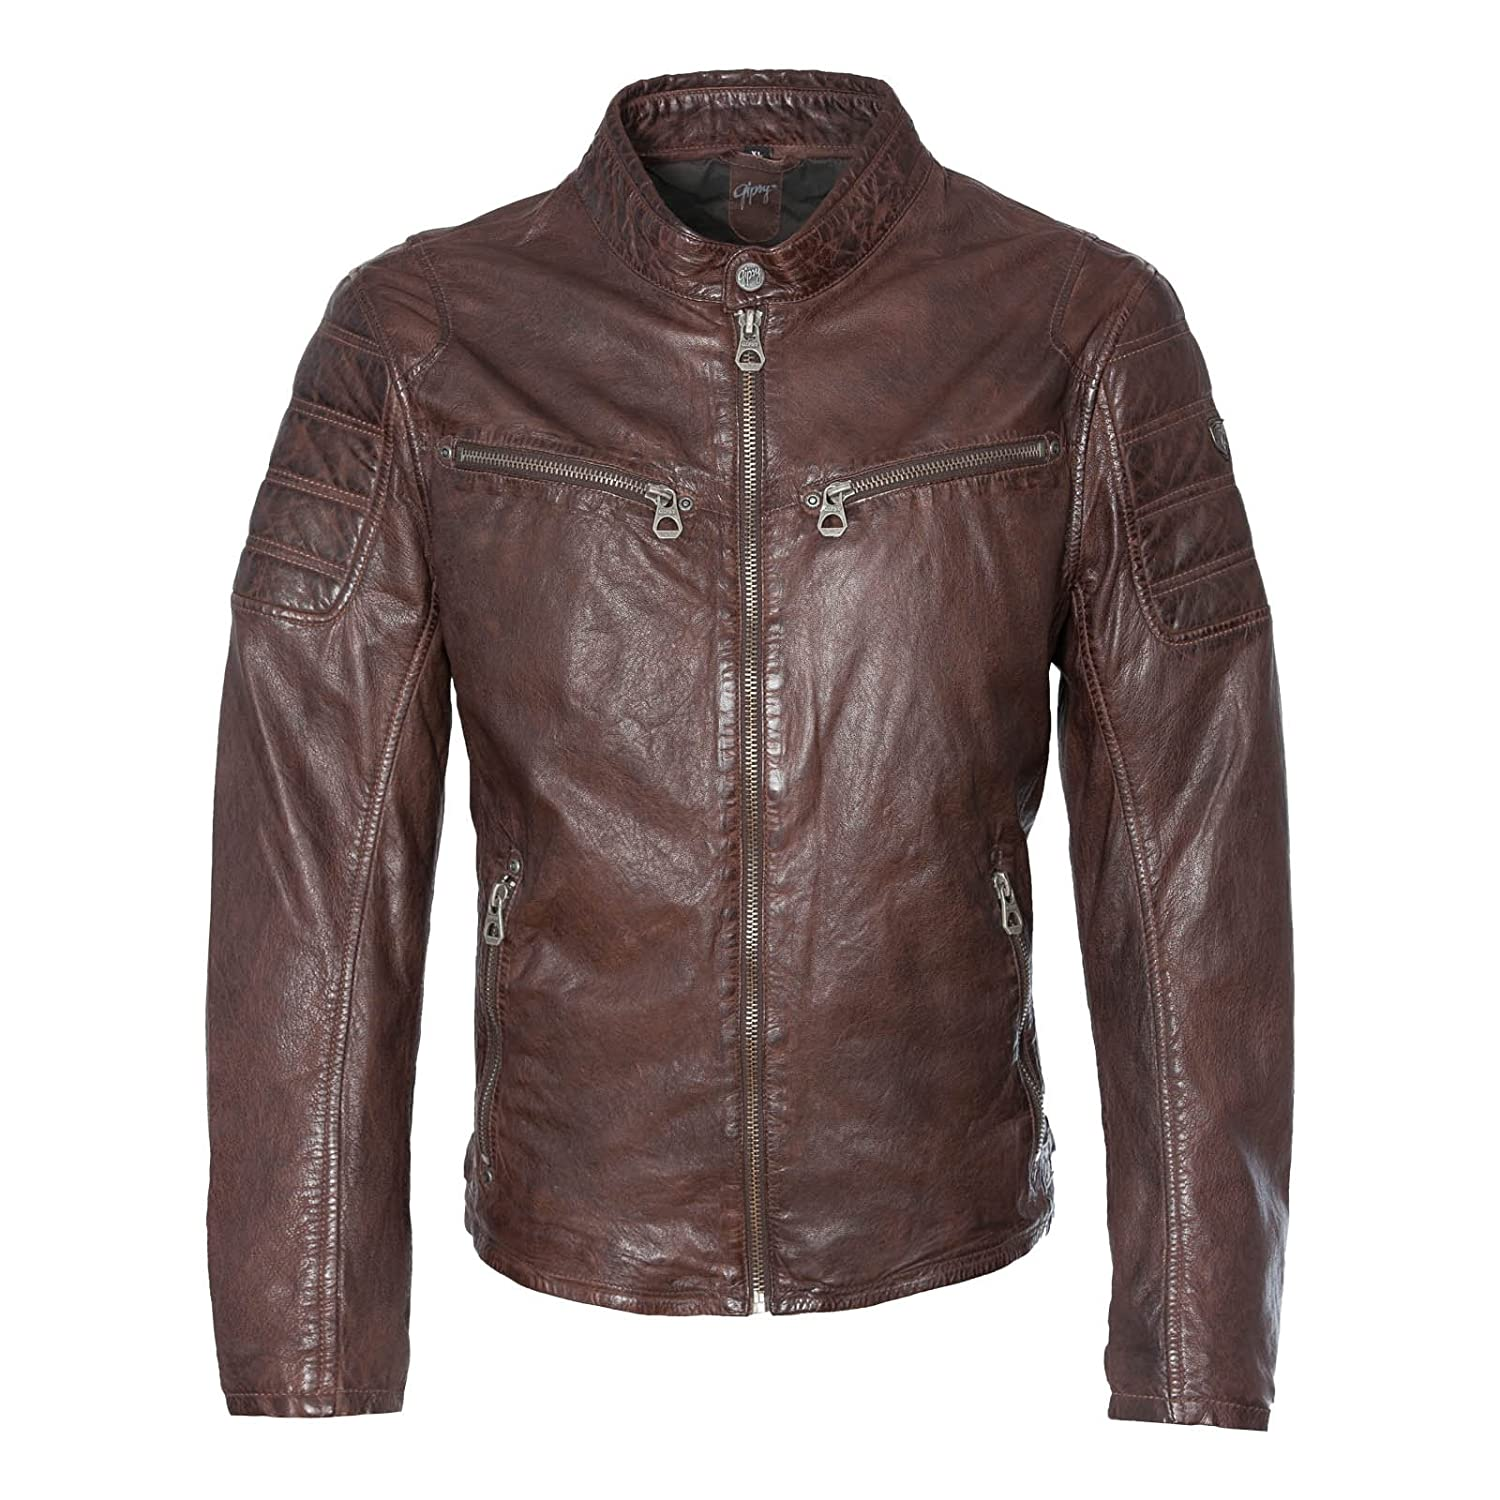 Gipsy by Mauritius Men's Leather Jacket brown dark brown